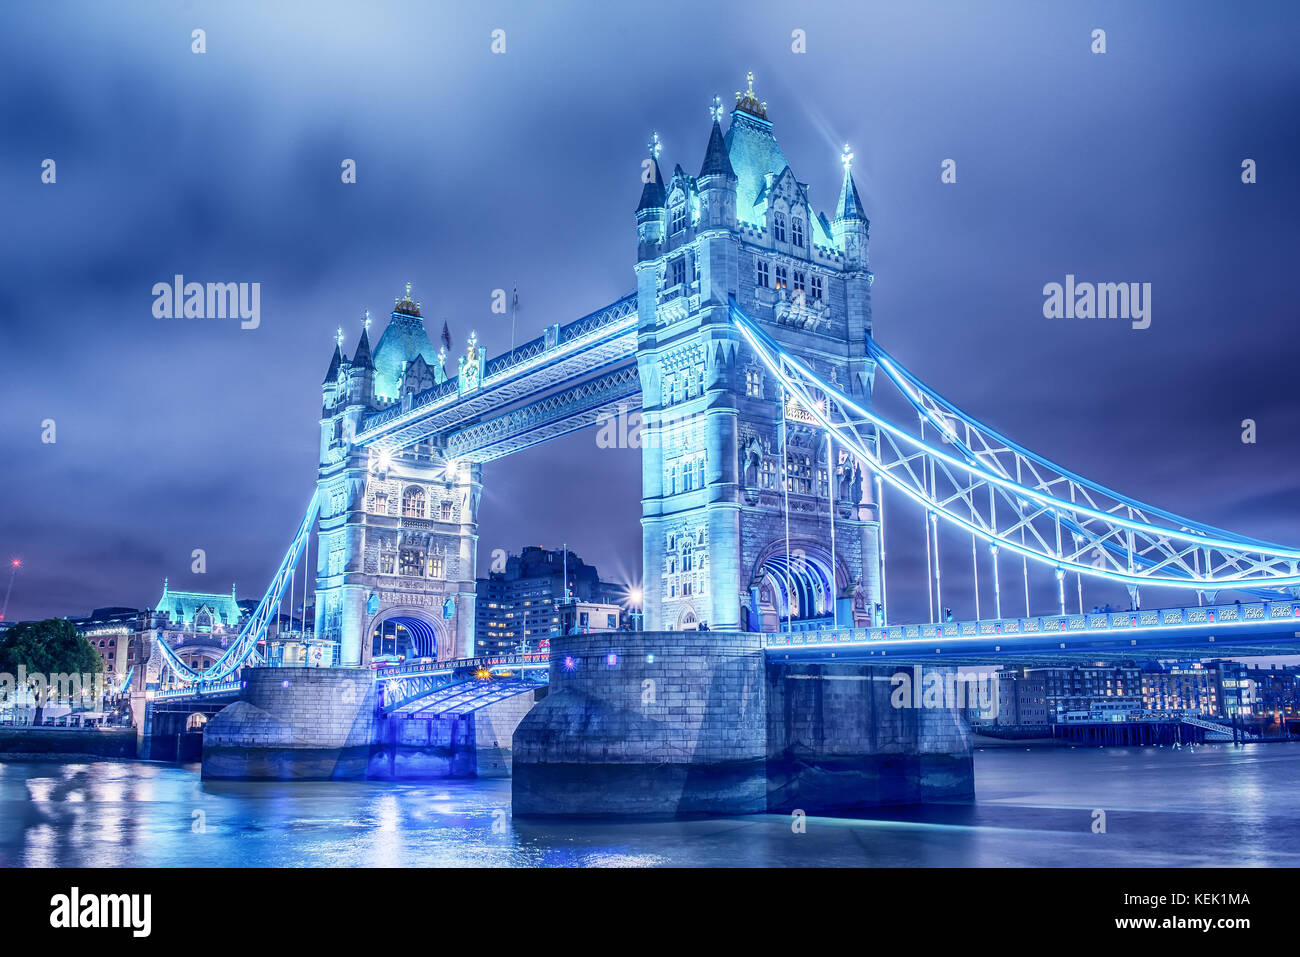 London, the United Kingdom: Tower Bridge on River Thames - Stock Image